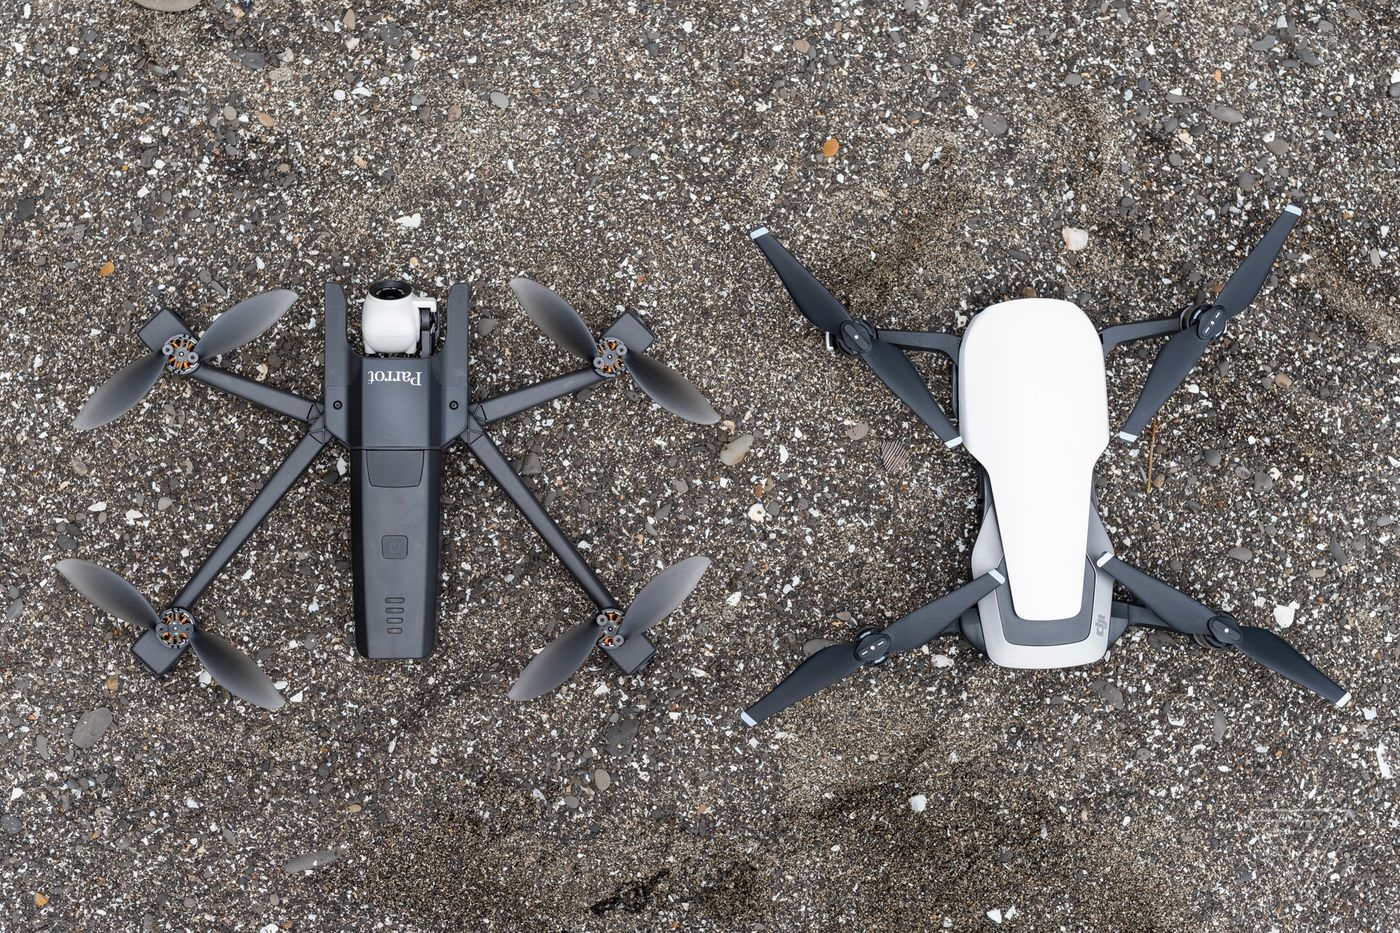 Parrot Anafi drone review: flying high, but falling short - The Verge